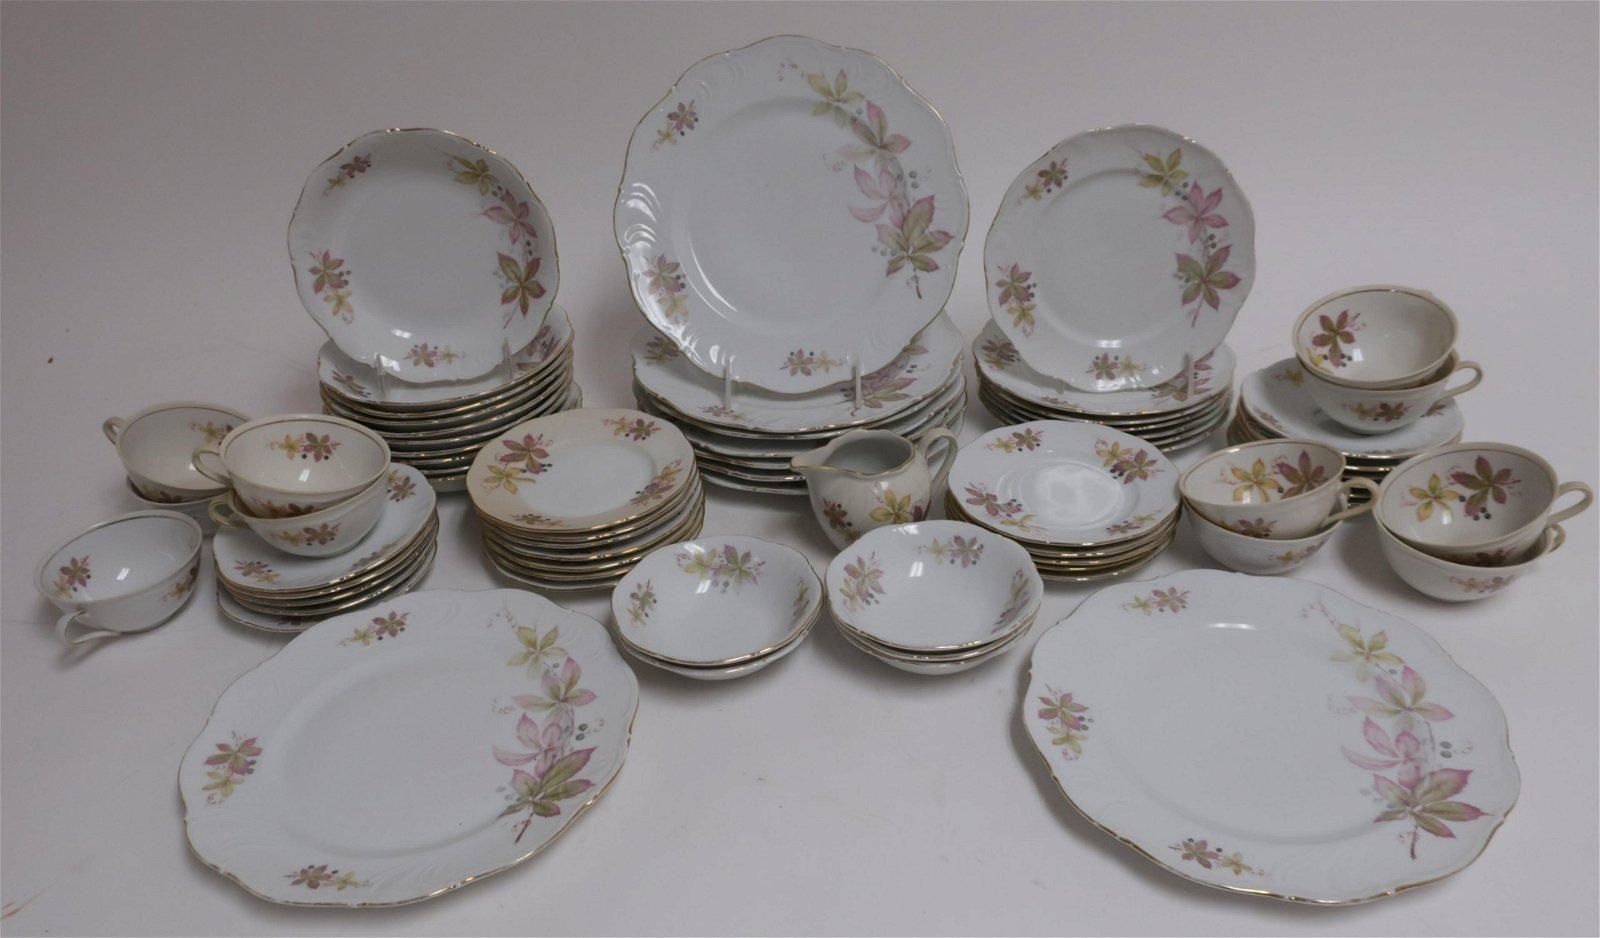 55 Pc. Winterling Marktleuthen Partial Set for 12